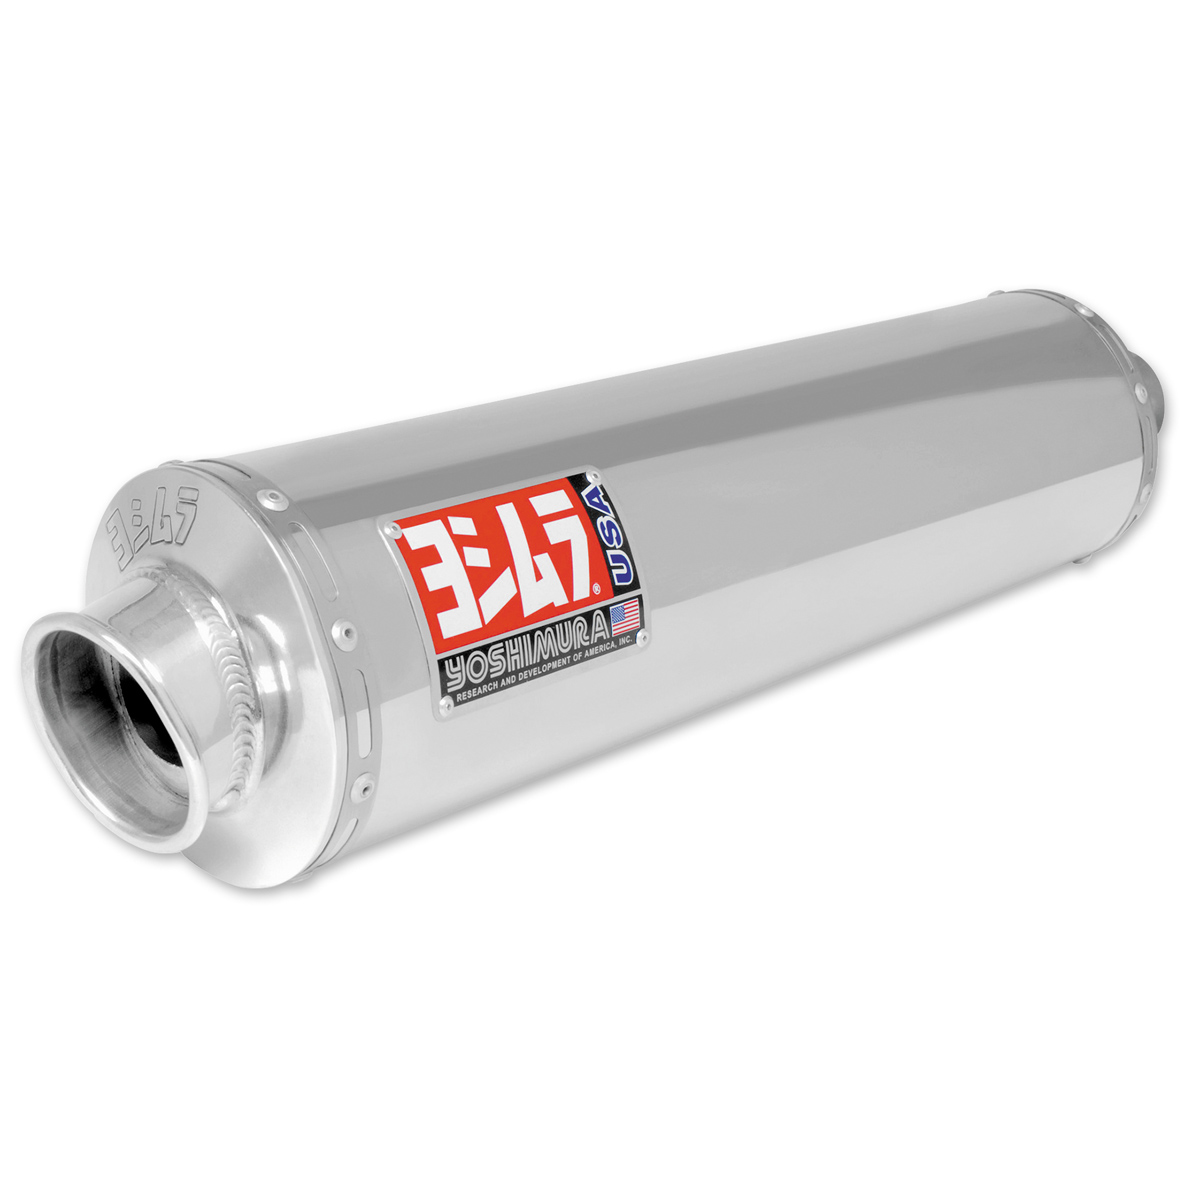 Yoshimura RS-3 Race Series Bolt-On Exhaust